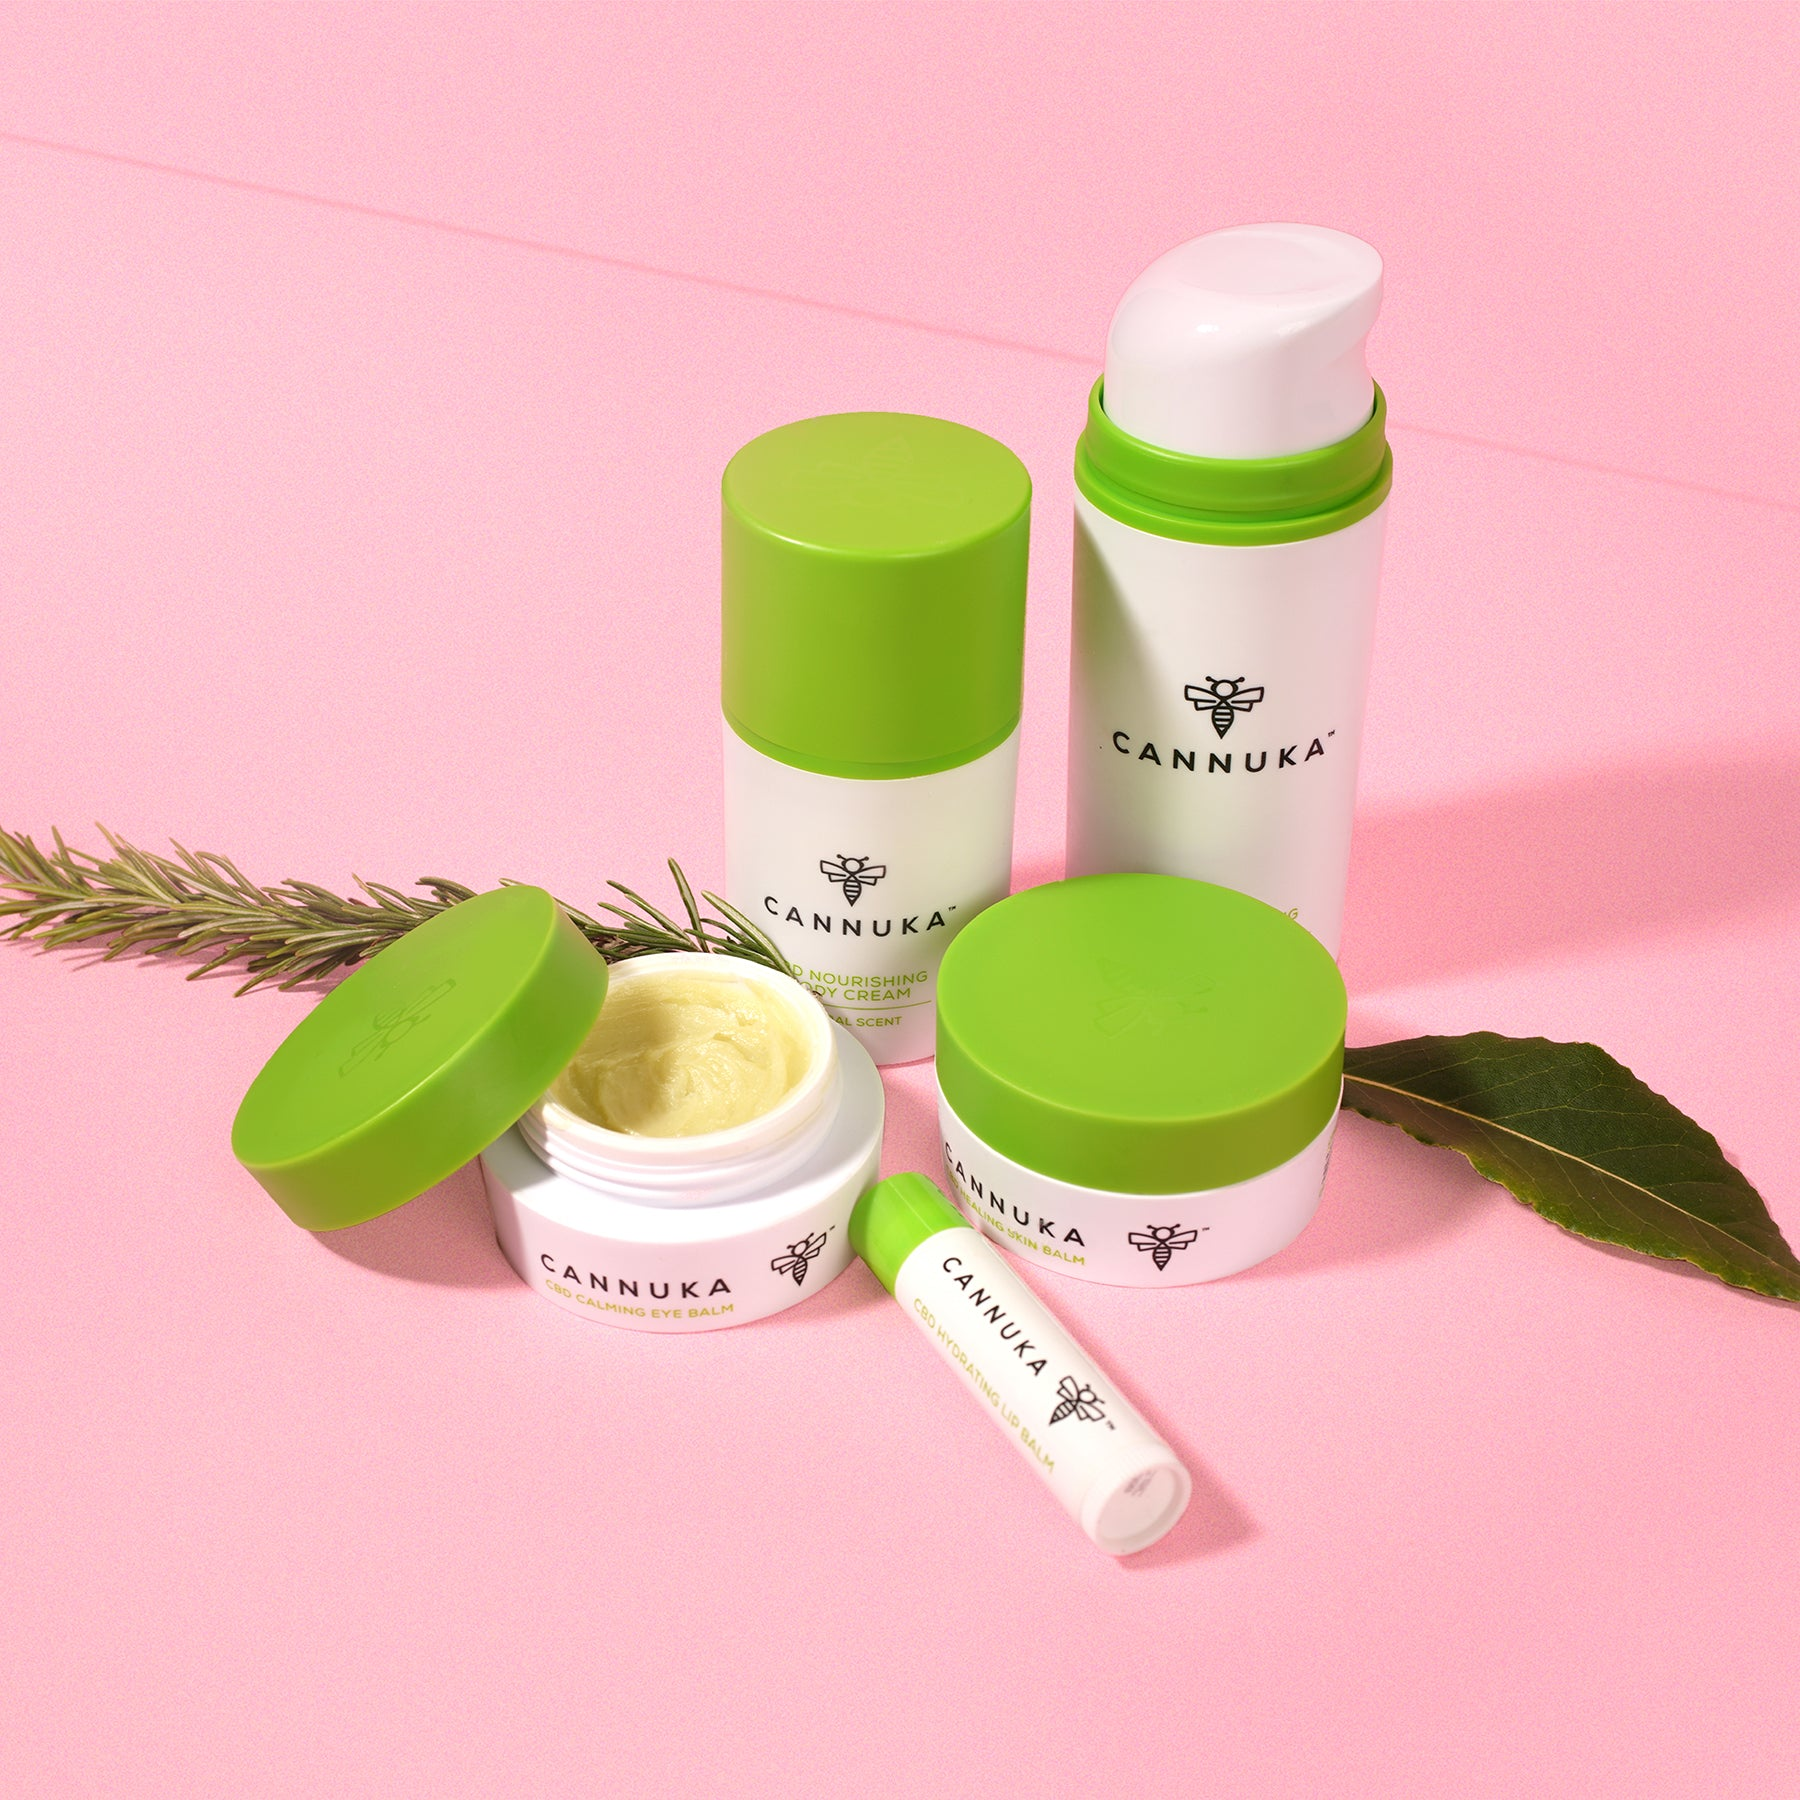 Still life photograph of five Cannuka products that includes eye balm, lip balm, body cream, and skin balm. They are photographed against a bright pink background and there is a sprig of fresh rosemary nestled among the products.